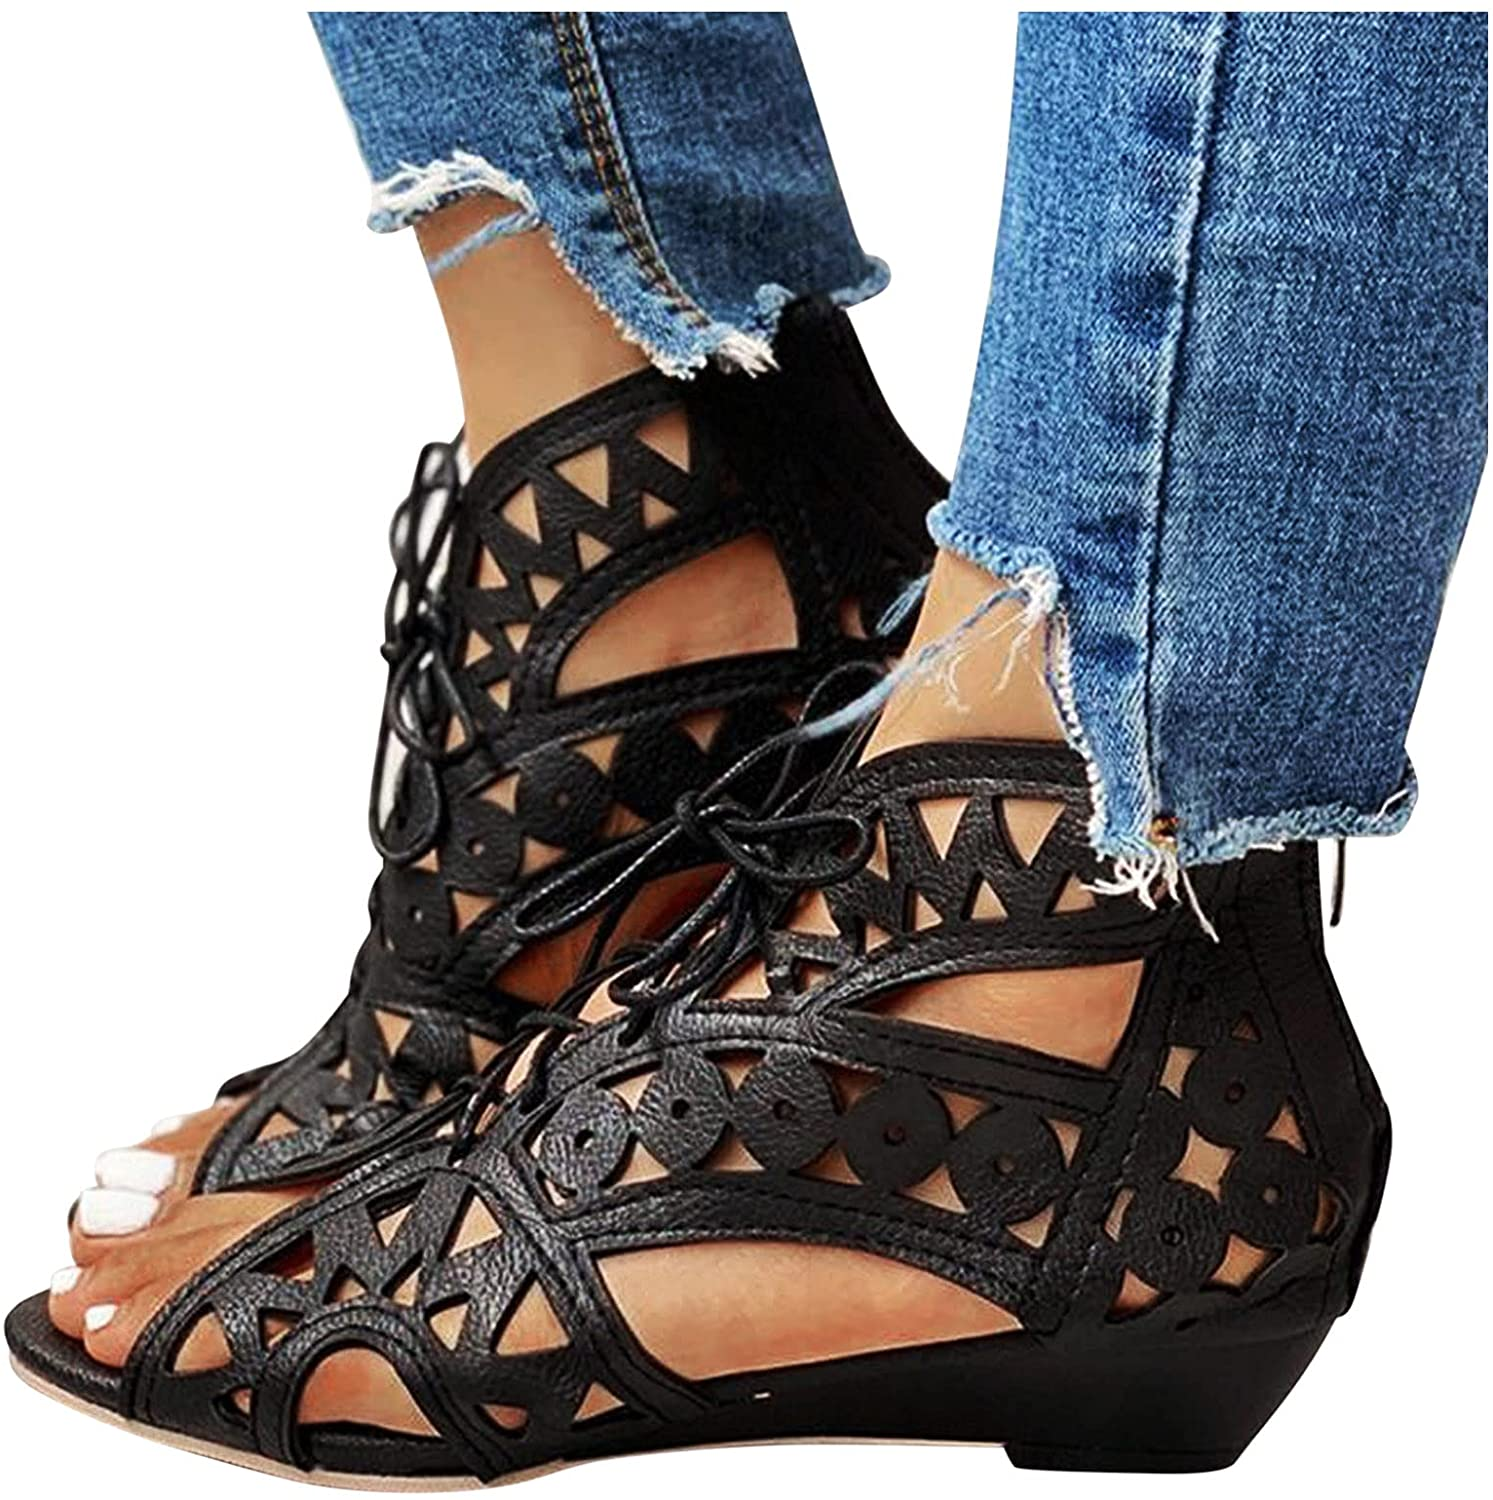 Bargain Las Vegas Mall Sandals for Women Wedge 2021 Fashion Summer Buckle Ankle